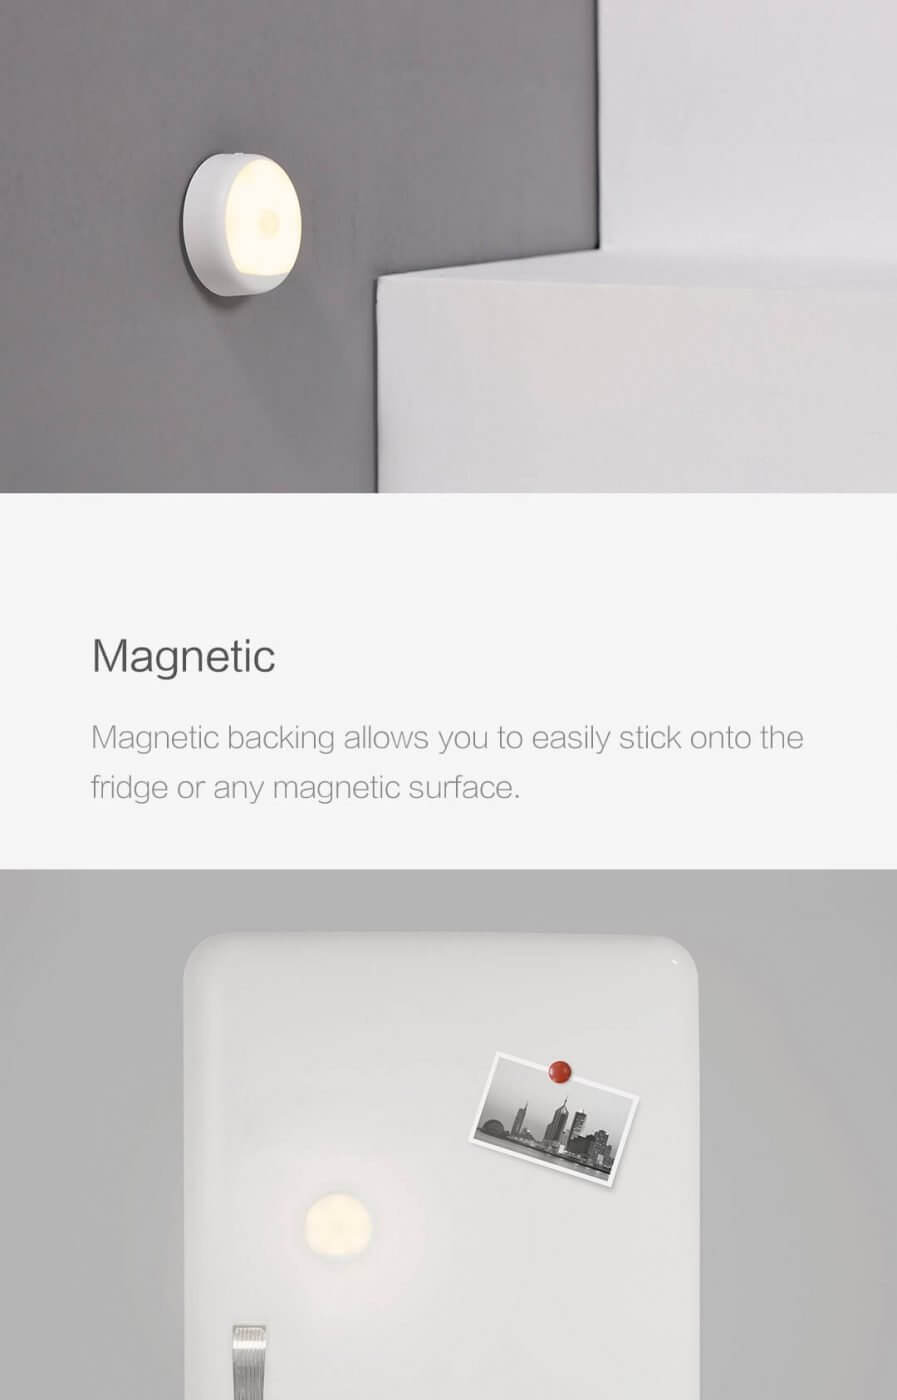 Yeelight Rechargeable Motion Sensor Nightlight Xiaomi Mi Passion Home Description 4